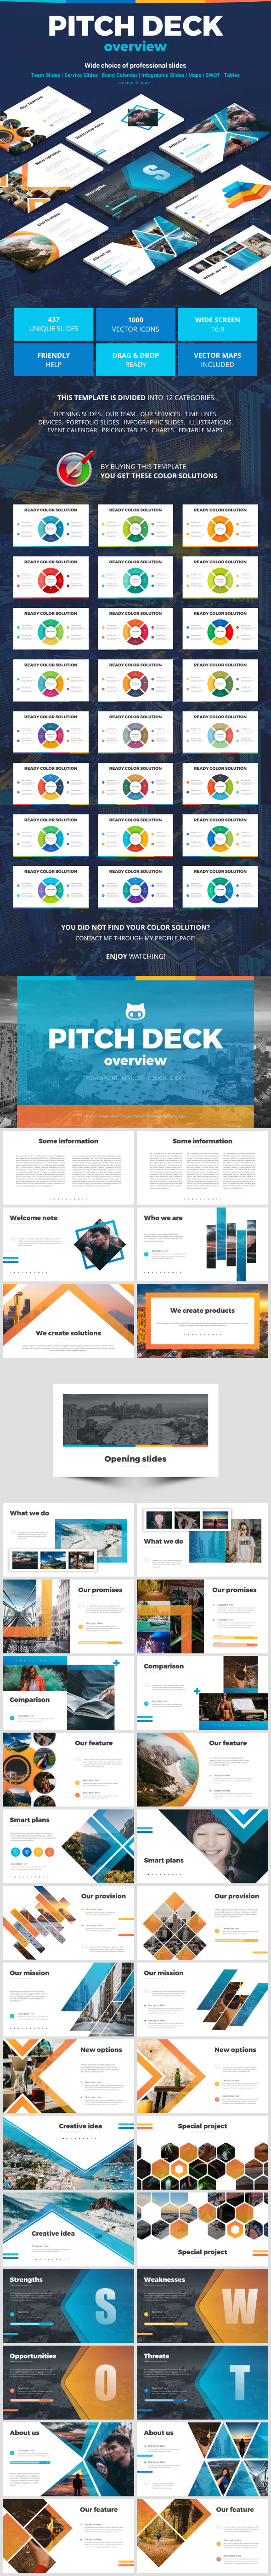 Pitch Deck Overview - Pitch Deck PowerPoint Templates